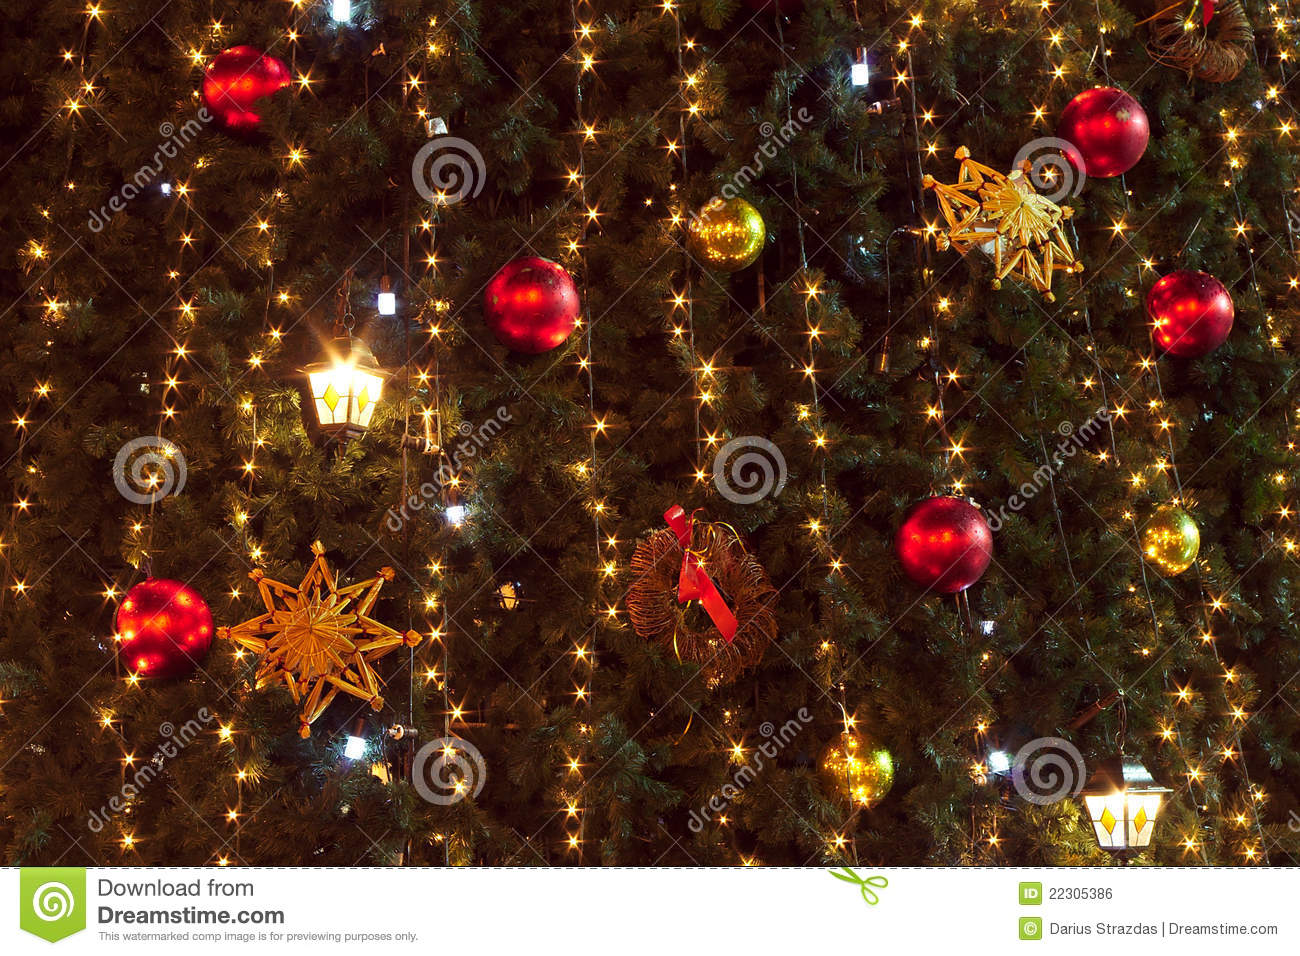 Christmas tree and lights background